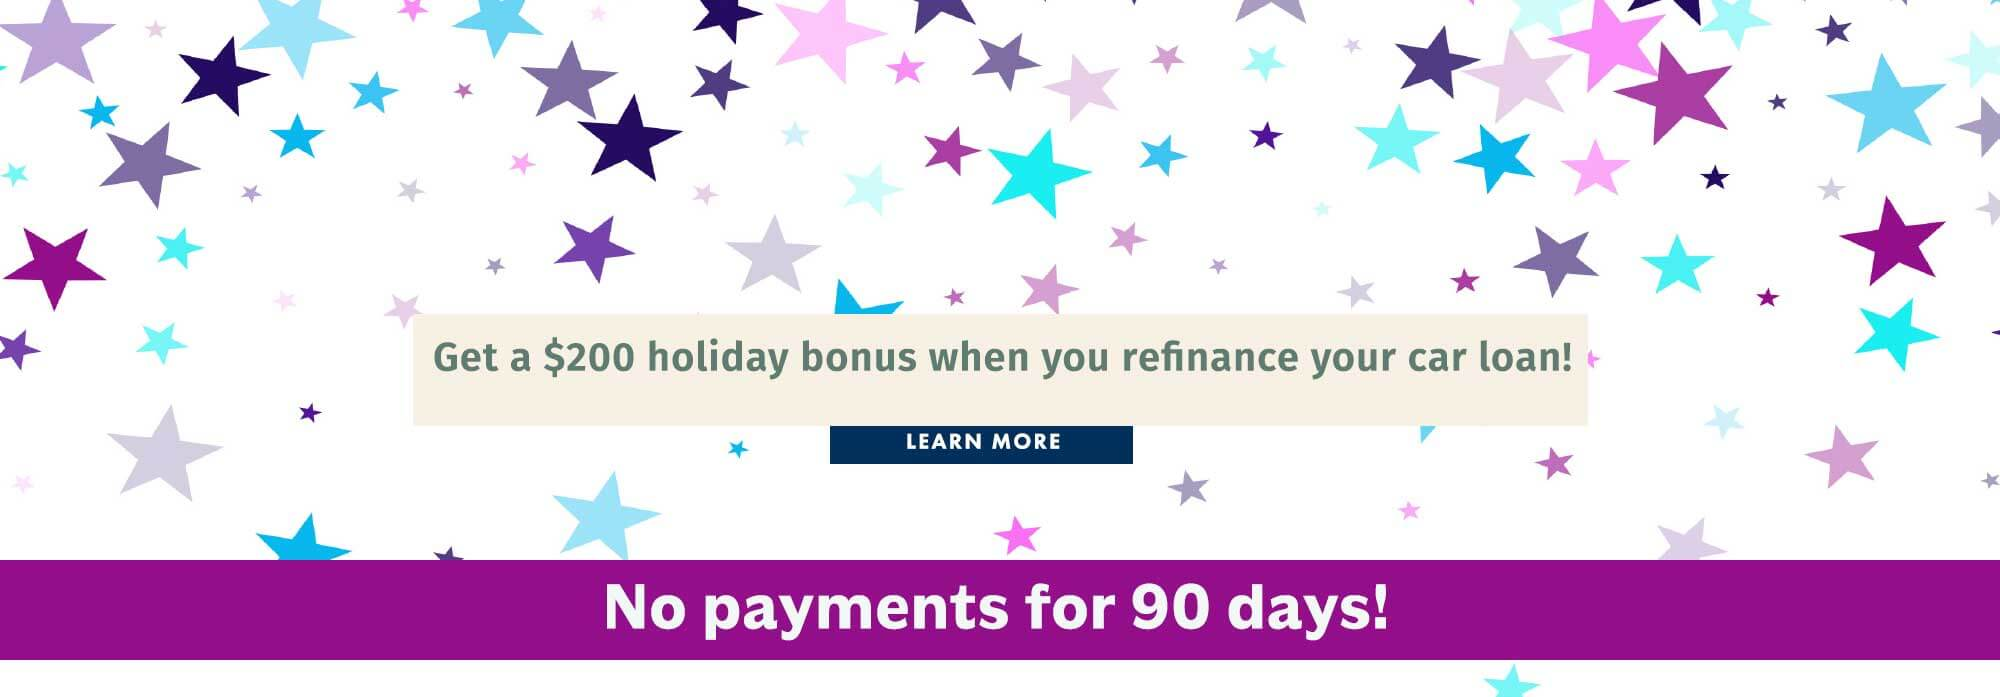 Get a $200 holiday bonus when you refinance your car loan!